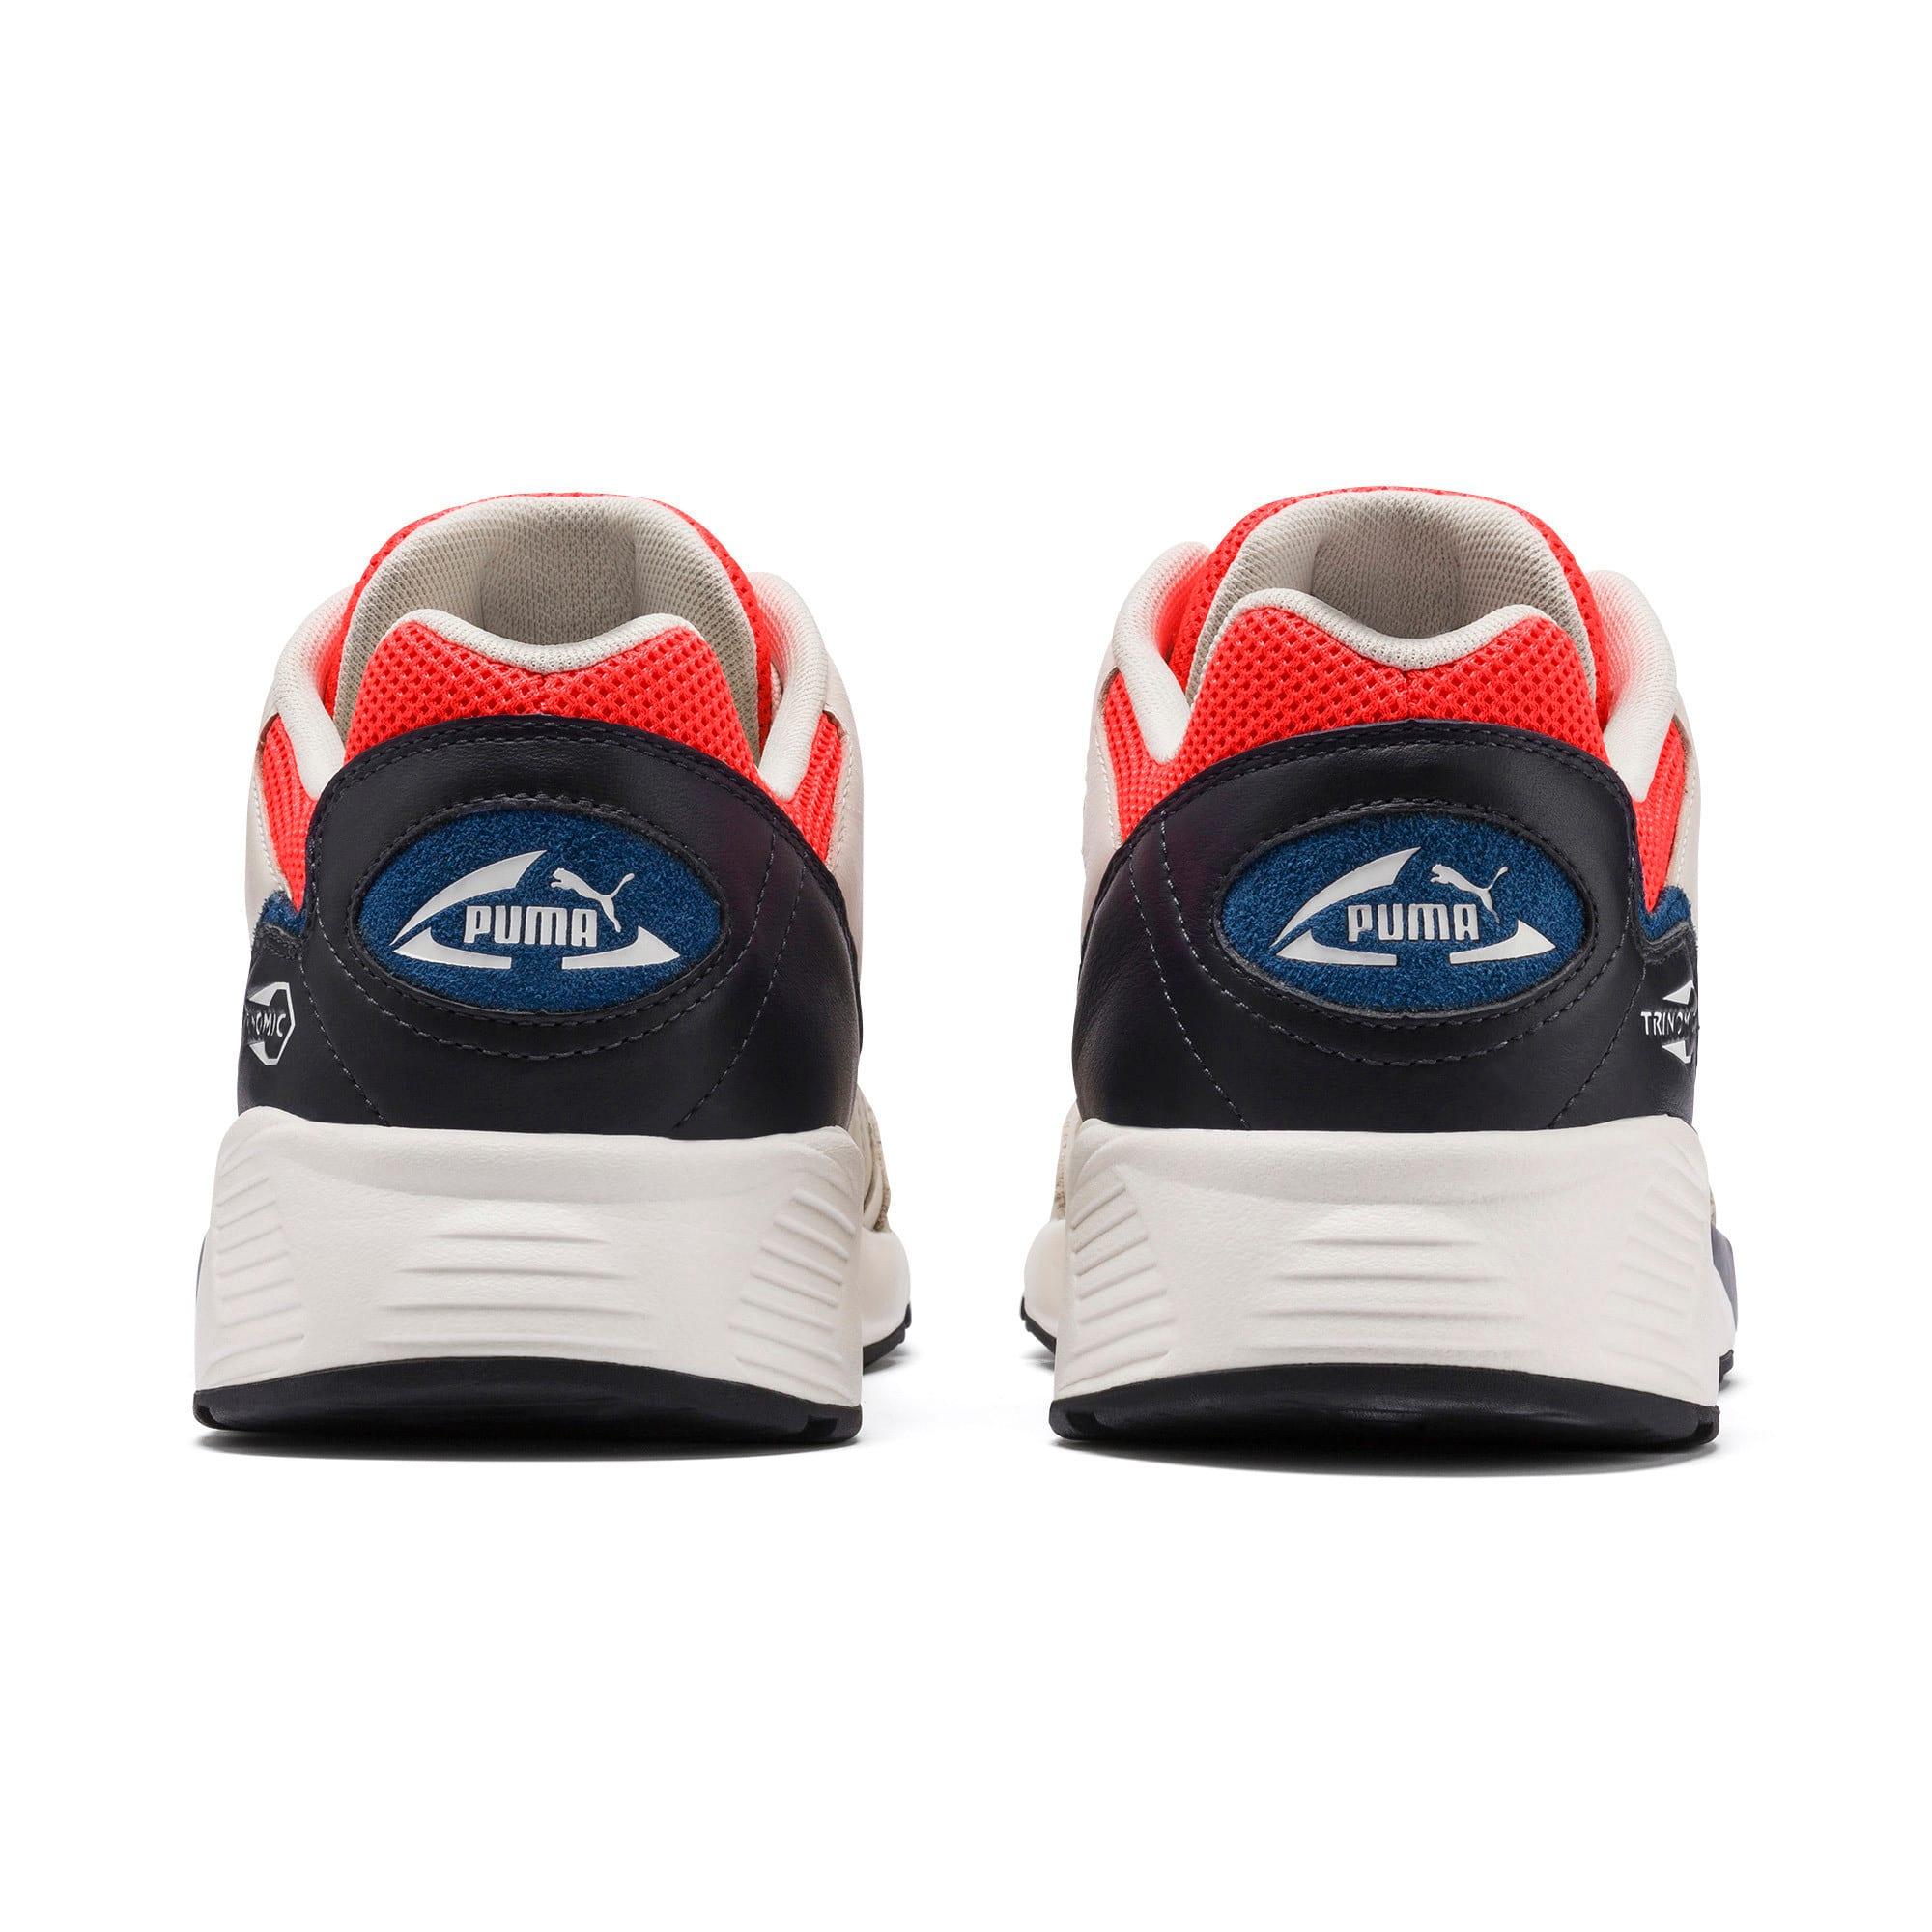 Thumbnail 3 of Prevail Classic Trainers, Whisper White-Nrgy Red, medium-IND